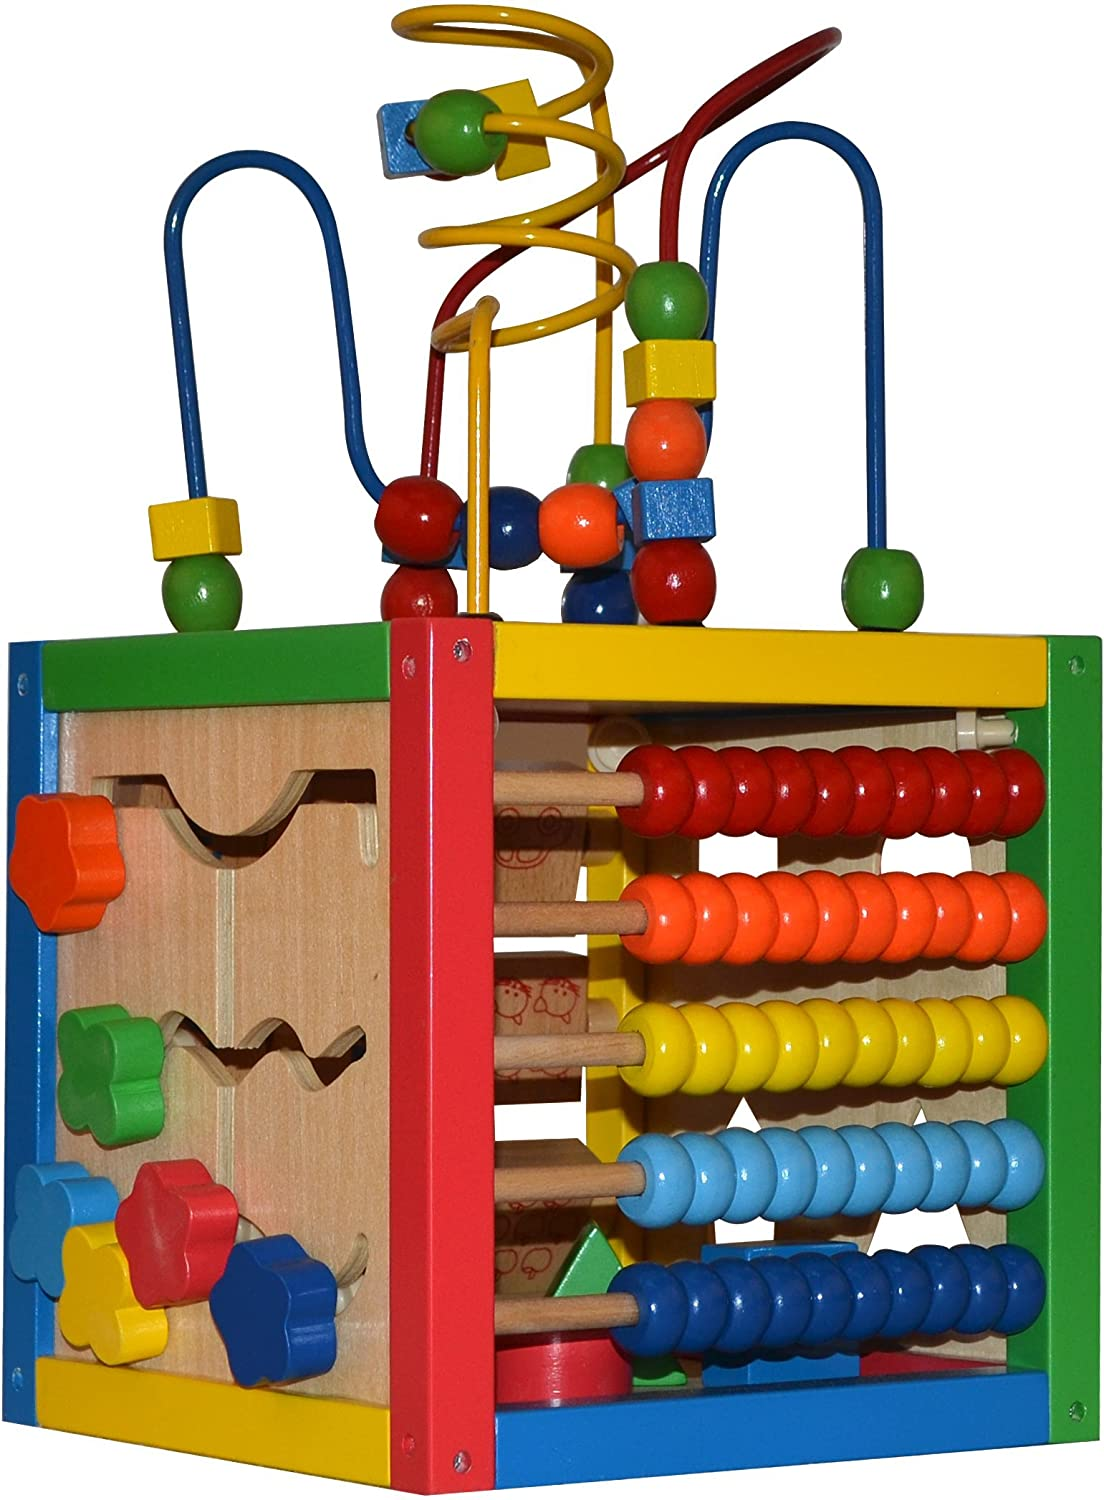 Activity Cube With Bead Maze - 5 in 1 Baby Activity Cube Includes Shape Sorter, Abacus Counting Beads, Counting Numbers, Sliding Shapes, Removable Bead Maze - My First Baby Toys - Original - By Play22 Review